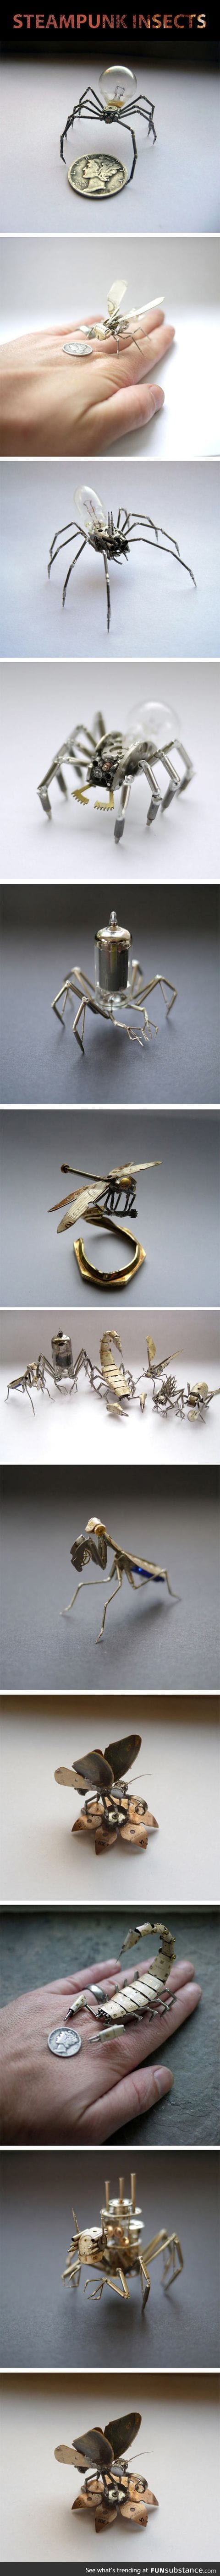 Tiny insects made out of watch parts